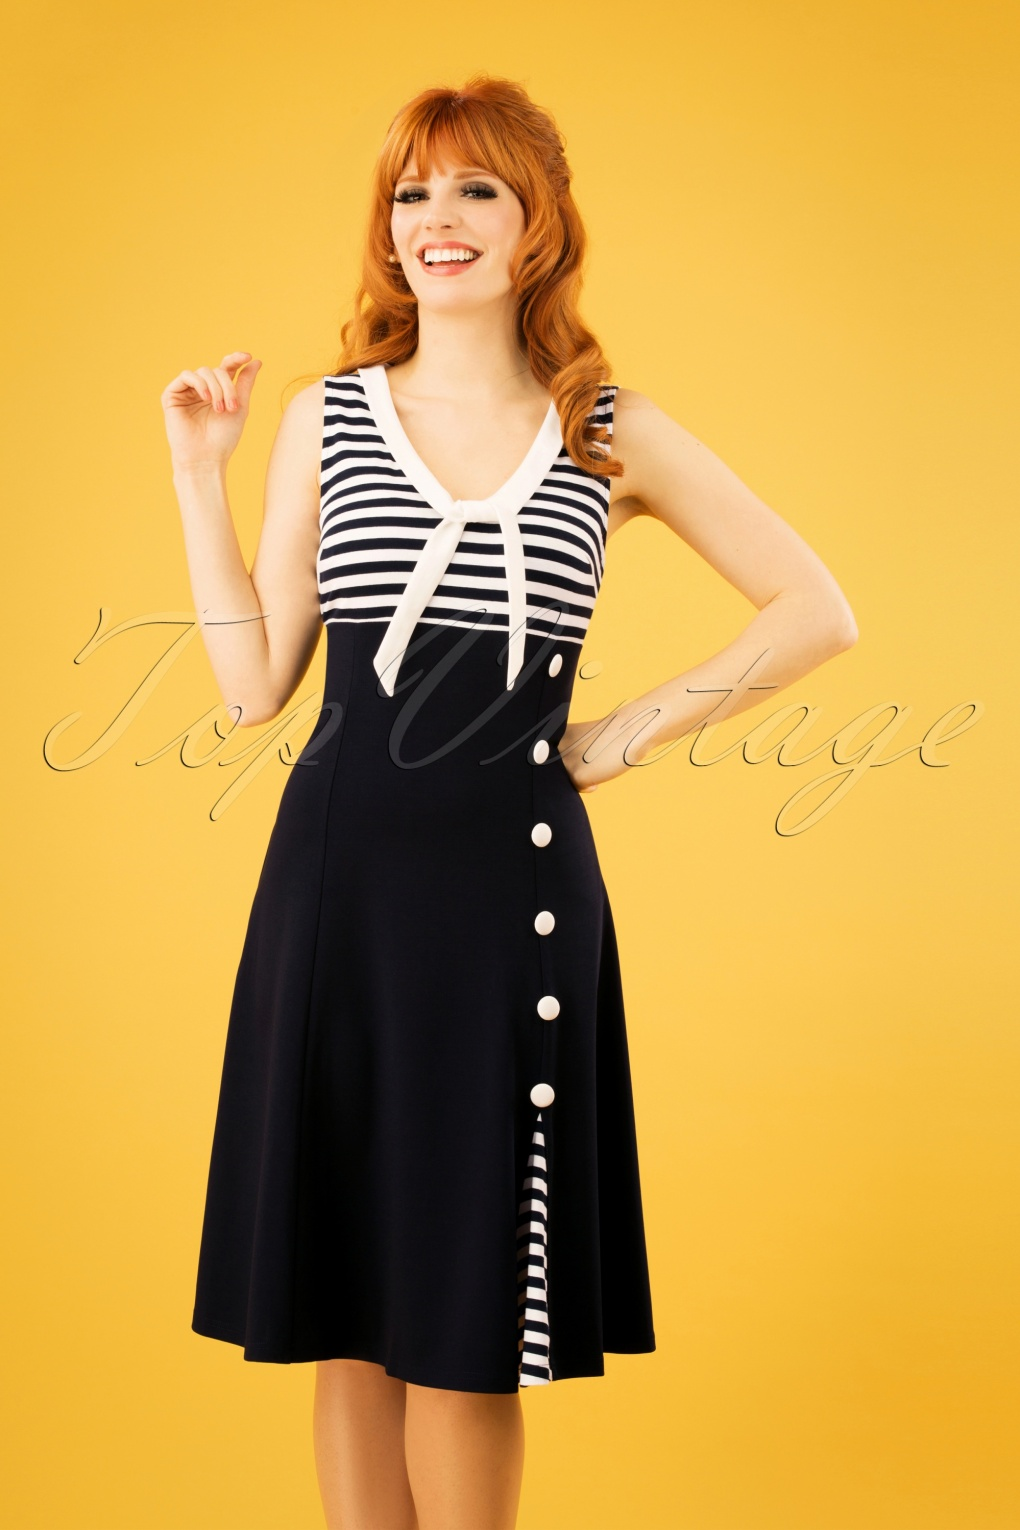 Vintage Cruise Outfits, Vacation Clothing 50s Vera Nautical Flared Sailor Dress in Navy £34.15 AT vintagedancer.com